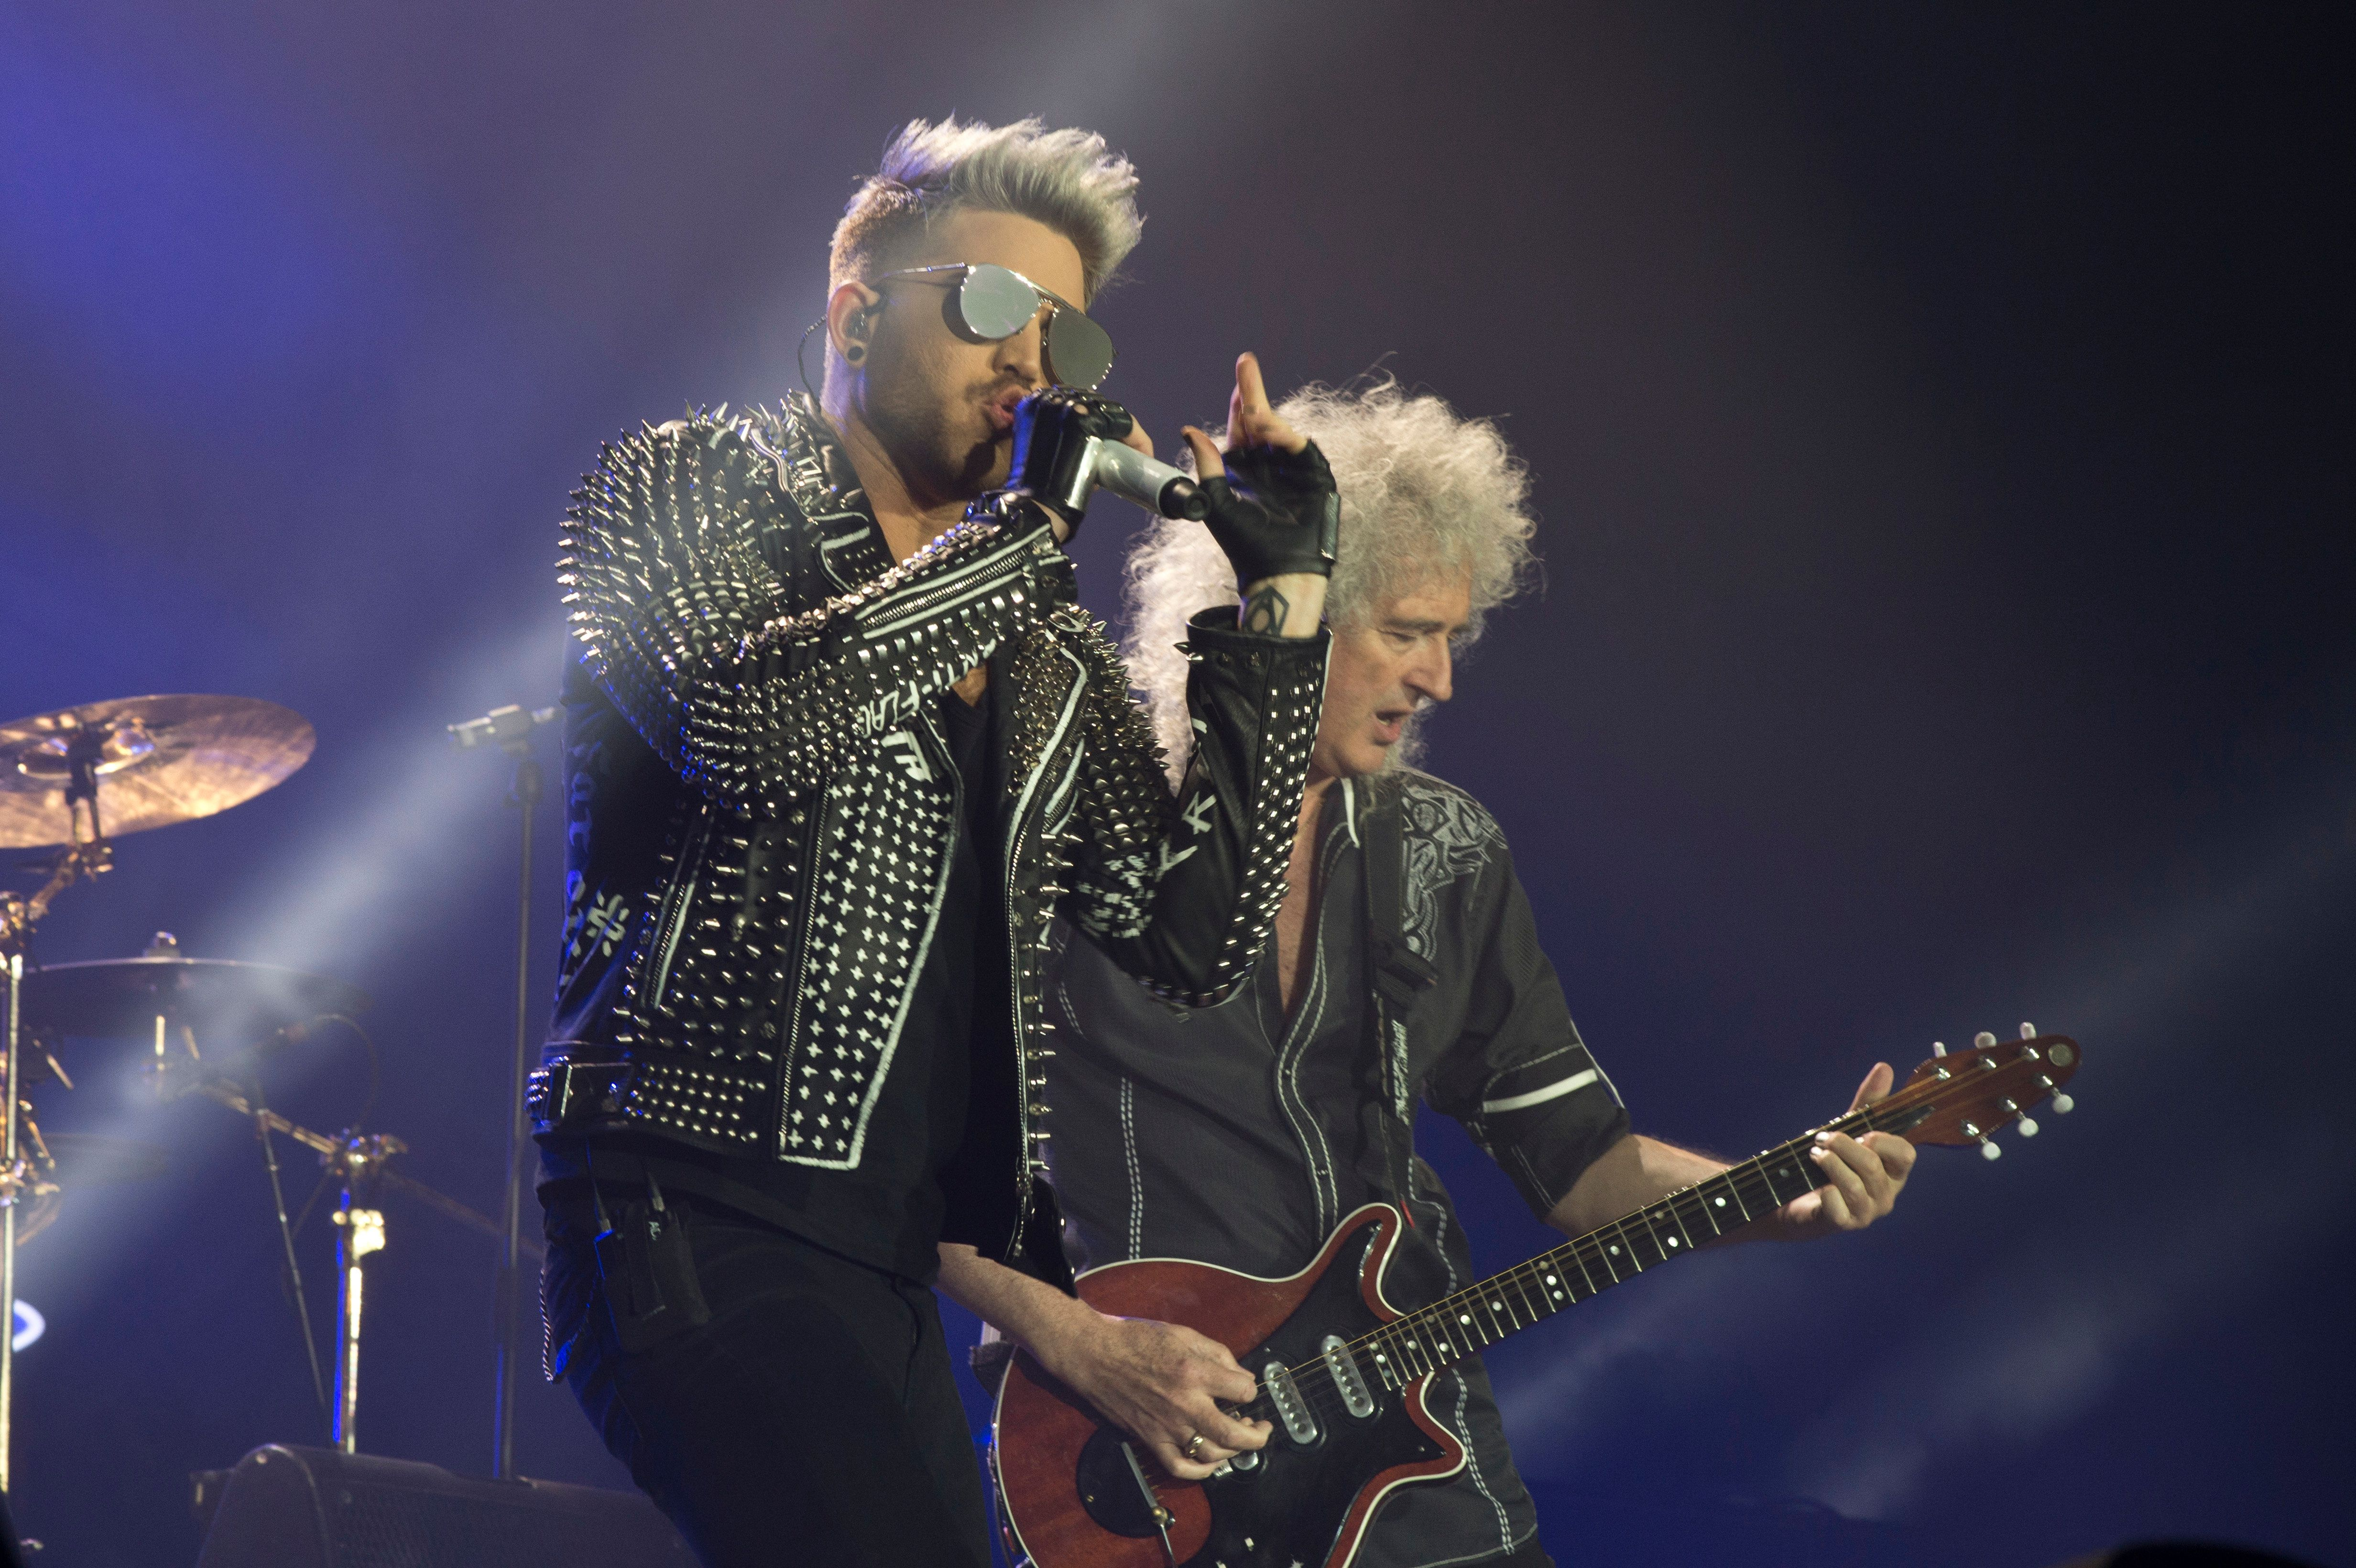 Brian May credits Adam Lambert's showmanship for keeping Queen's magic alive, 20 years after the loss...